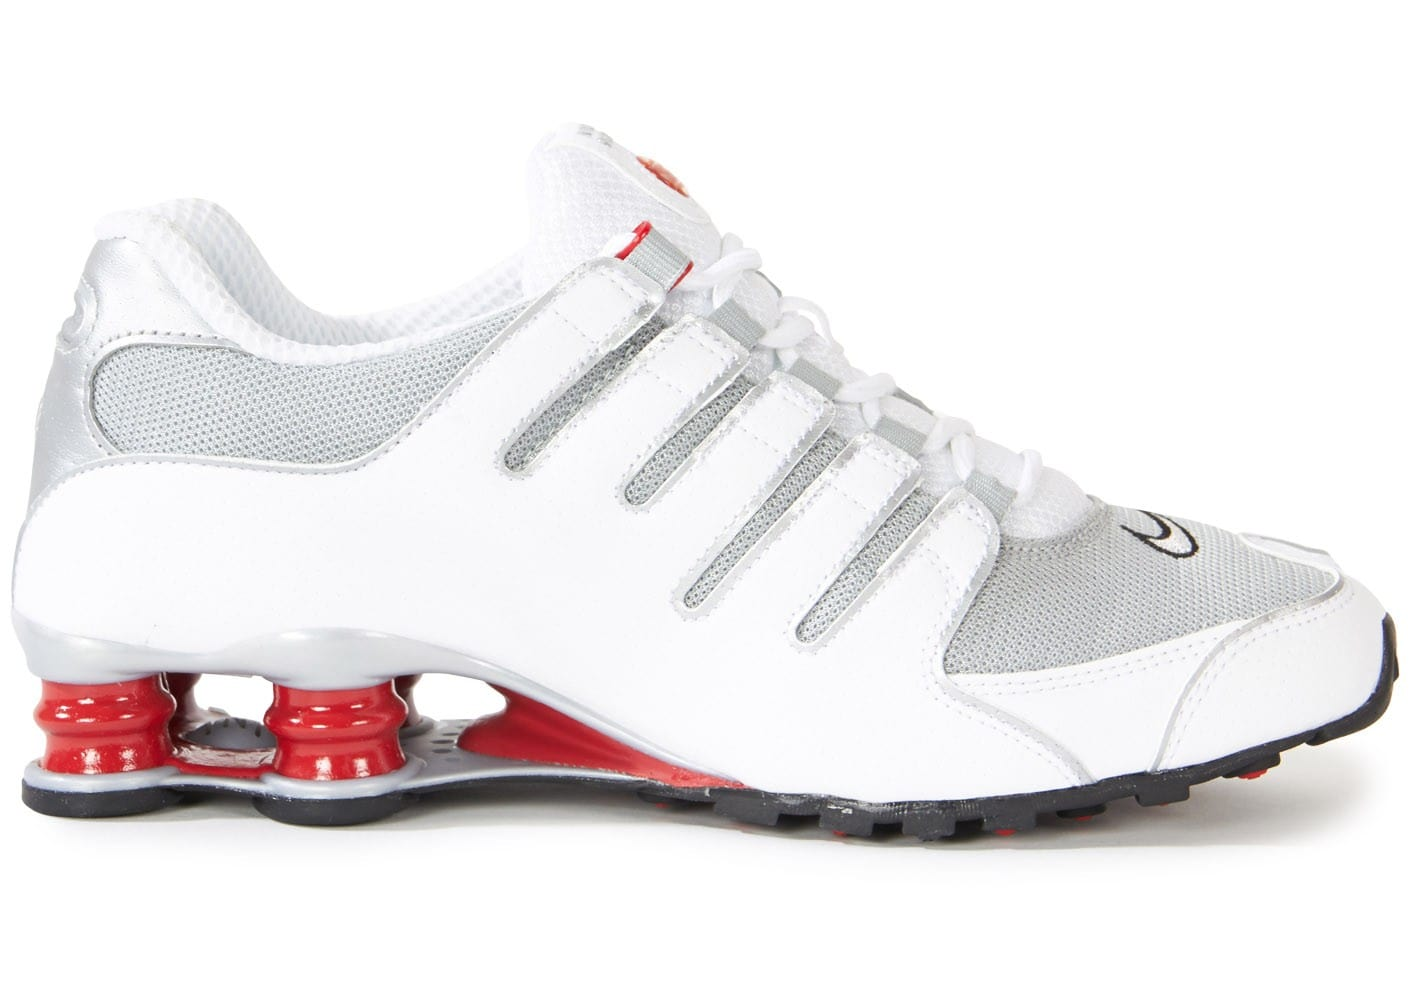 info for a5813 33f00 ... Chaussures Nike Shox Nz Blanche Rouge vue dessous ...